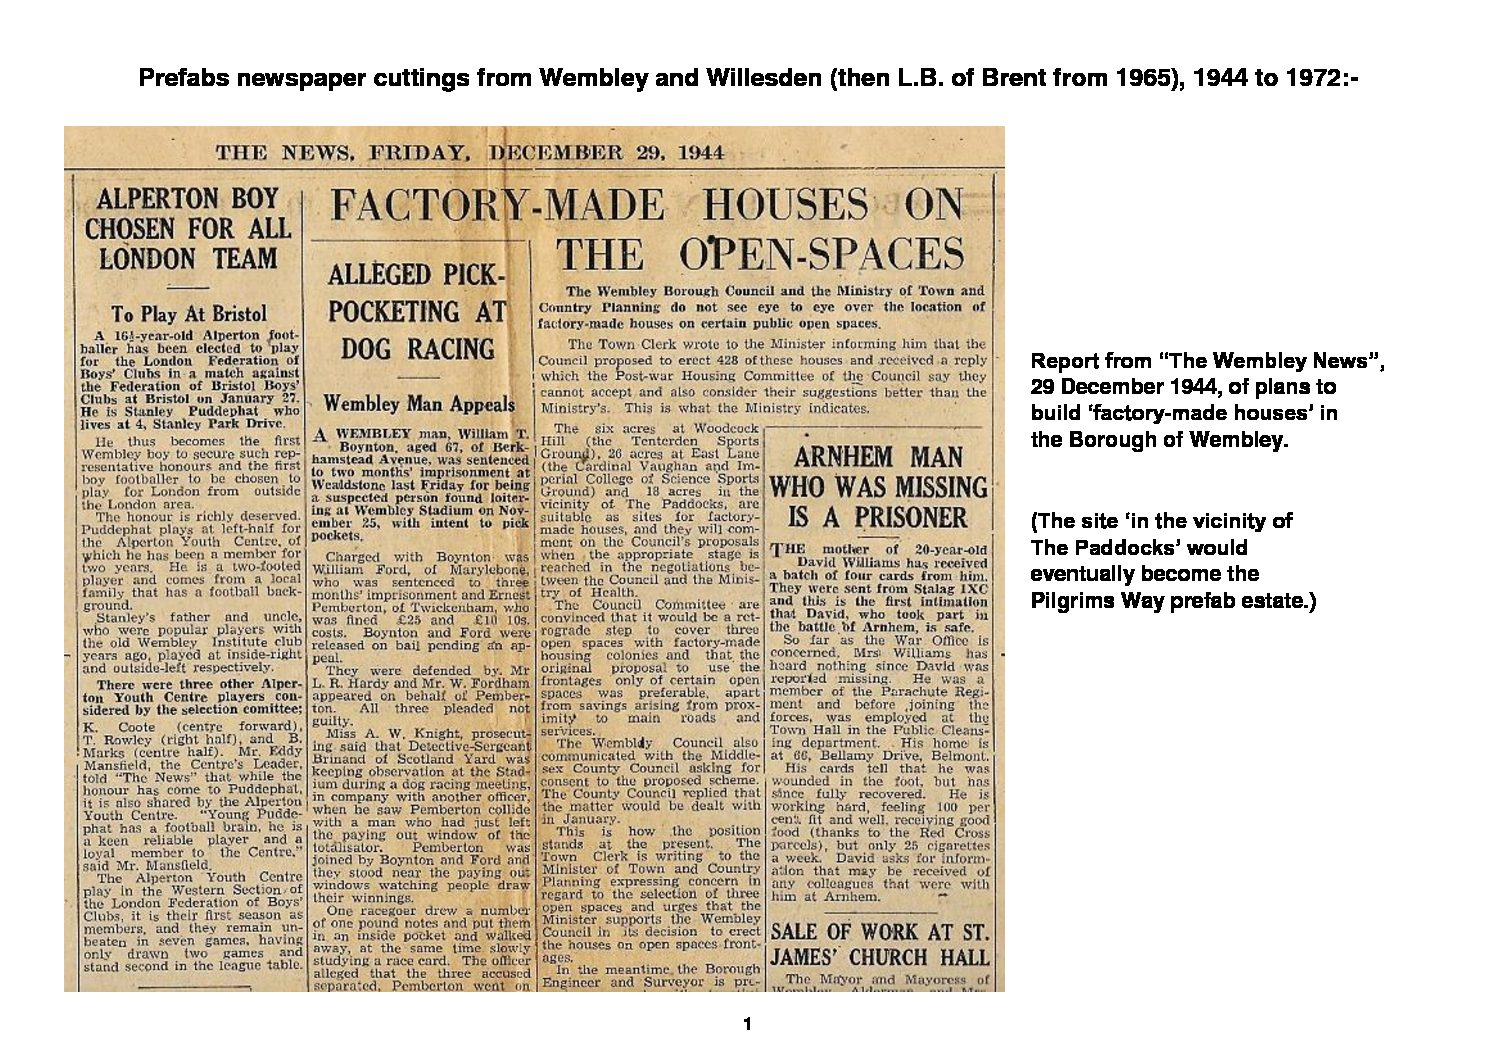 Prefab newspaper cuttings from Wembley and Willesden, 1944 - 1972